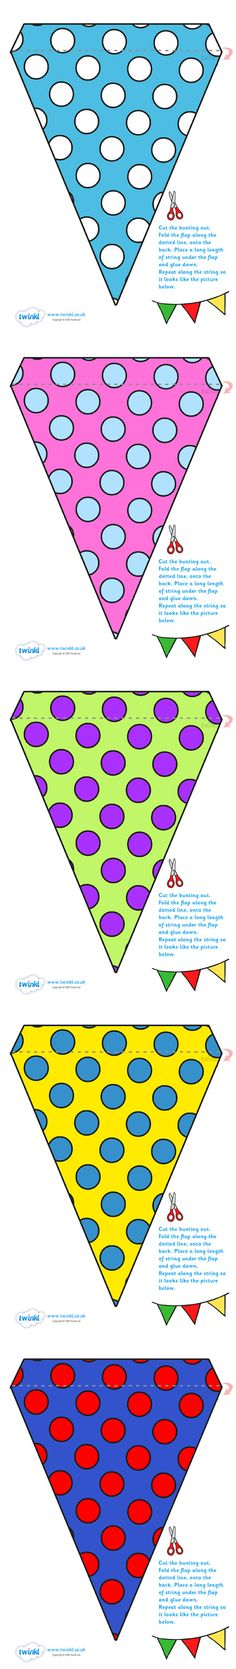 Twinkl Resources Display Bunting Spots Thousands of printable primary teaching resources for EYFS and beyond! Classroom Bunting, Classroom Decor, Classroom Organisation, Classroom Displays, Primary Teaching, Teaching Resources, Primary School, Teaching Ideas, Curriculum Template